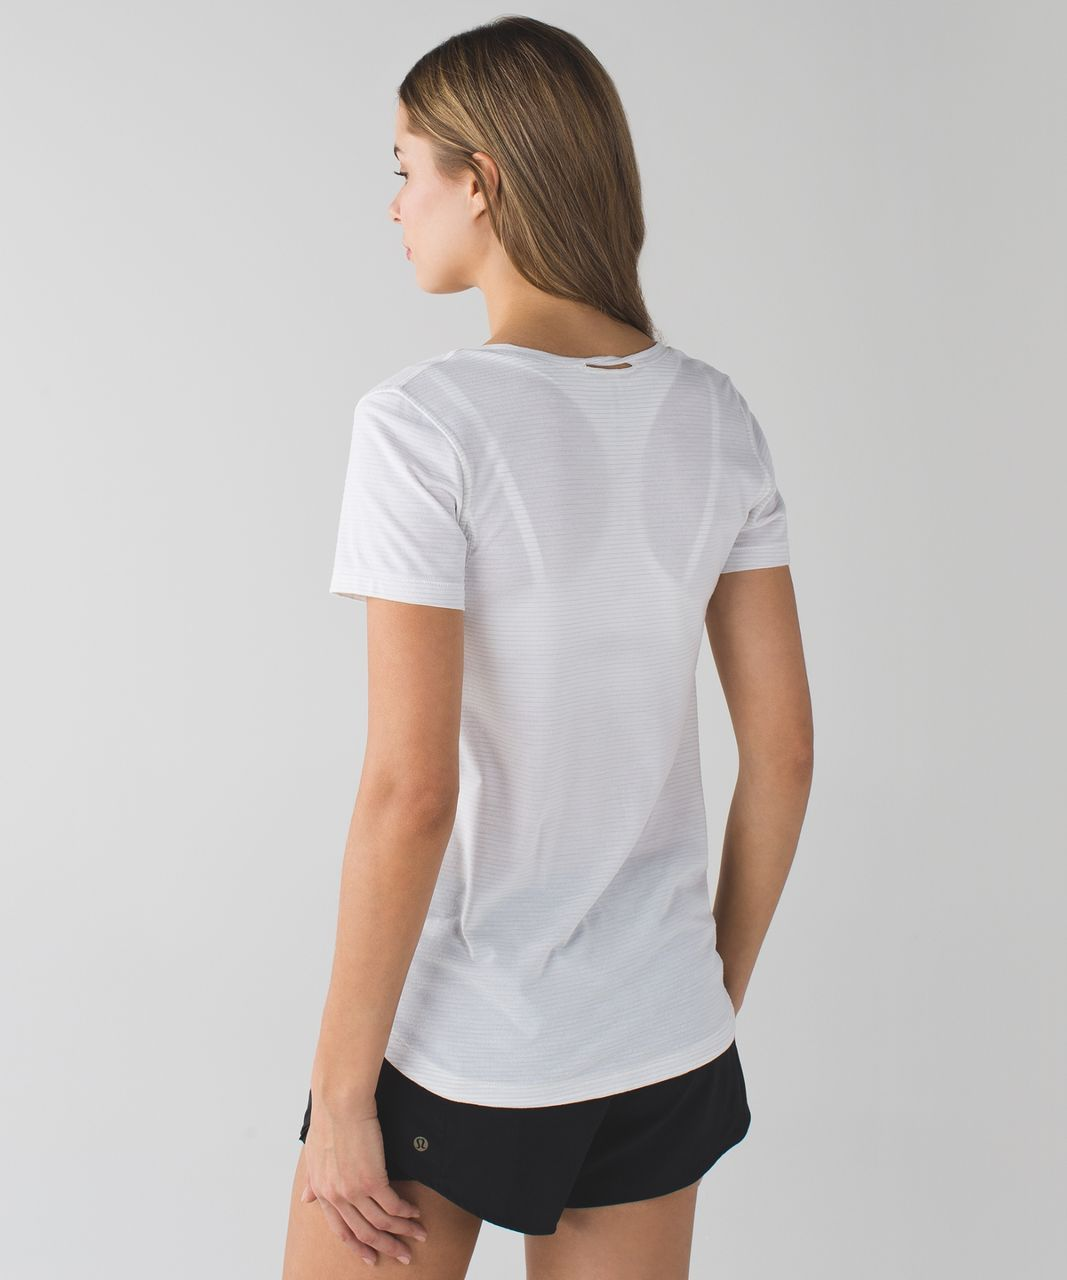 Lululemon What The Sport Tee - Heathered White